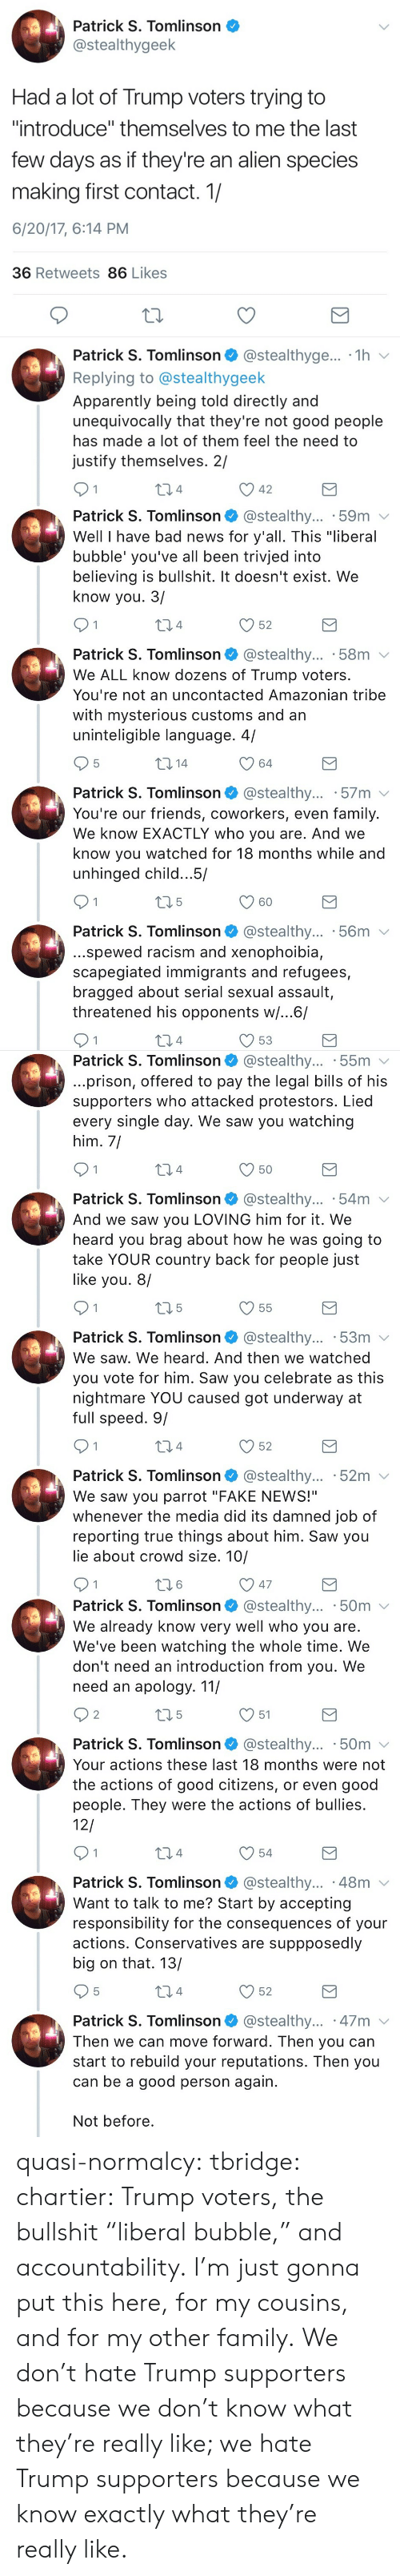 """Apparently, Bad, and Fake: Patrick S. Tomlinson  @stealthygeek  Had a lot of Trump voters trying to  """"introduce"""" themselves to me the last  few days as if they're an alien species  making first contact. 1/  6/20/17, 6:14 PM  36 Retweets 86 Likes  Patrick S. Tomlinson @stealthyge... 1h v  Replying to @stealthygeek  Apparently being told directly and  unequivocally that they're not good people  has made a lot of them feel the need to  justify themselves. 2/  04  42   Patrick S. Tomlinson @stealthy... .59m v  Well I have bad news for y'all. This """"liberal  bubble' you've all been trivjed into  believing is bullshit. It doesn't exist. We  know you. 3/  4  52  Patrick S. Tomlinson @stealthy... 58m  We ALL know dozens of Trump voters.  You're not an uncontacted Amazonian tribe  with mysterious customs and an  uninteligible language. 4/  5  64  Patrick S. Tomlinson @stealthy... 57m v  You're our friends, coworkers, even family.  We know EXACTLY who you are. And we  know you watched for 18 months while and  unhinged child.. .5/  60  Patrick S. Tomlinson* @stealthy...-56m ﹀  ..spewed racism and xenophoibia,  scapegiated immigrants and refugees,  bragged about serial sexual assault,  threatened his opponents w/...6/  4  53   Patrick S. Tomlinson @stealthy... 55m v  prison, offered to pay the legal bills of his  supporters who attacked protestors. Lied  every single day. We saw you watching  him, 7  4  Patrick S. Tomlinson @stealthy... .54m  And we saw you LOVING him for it. We  heard you brag about how he was going to  take YOUR country back for people just  like you. 8/  V55  Patrick S. Tomlinson* @stealthy...-53m  We saw. We heard. And then we watched  you vote for him. Saw you celebrate as this  nightmare YOU caused got underway at  full speed. 9/  4  52  Patrick S. Tomlinson @stealthy... 52m v  We saw you parrot """"FAKE NEWS!""""  whenever the media did its damned job of  reporting true things about him. Saw you  lie about crowd size. 10/  6   Patrick S. Tomlinson @stealthy... """